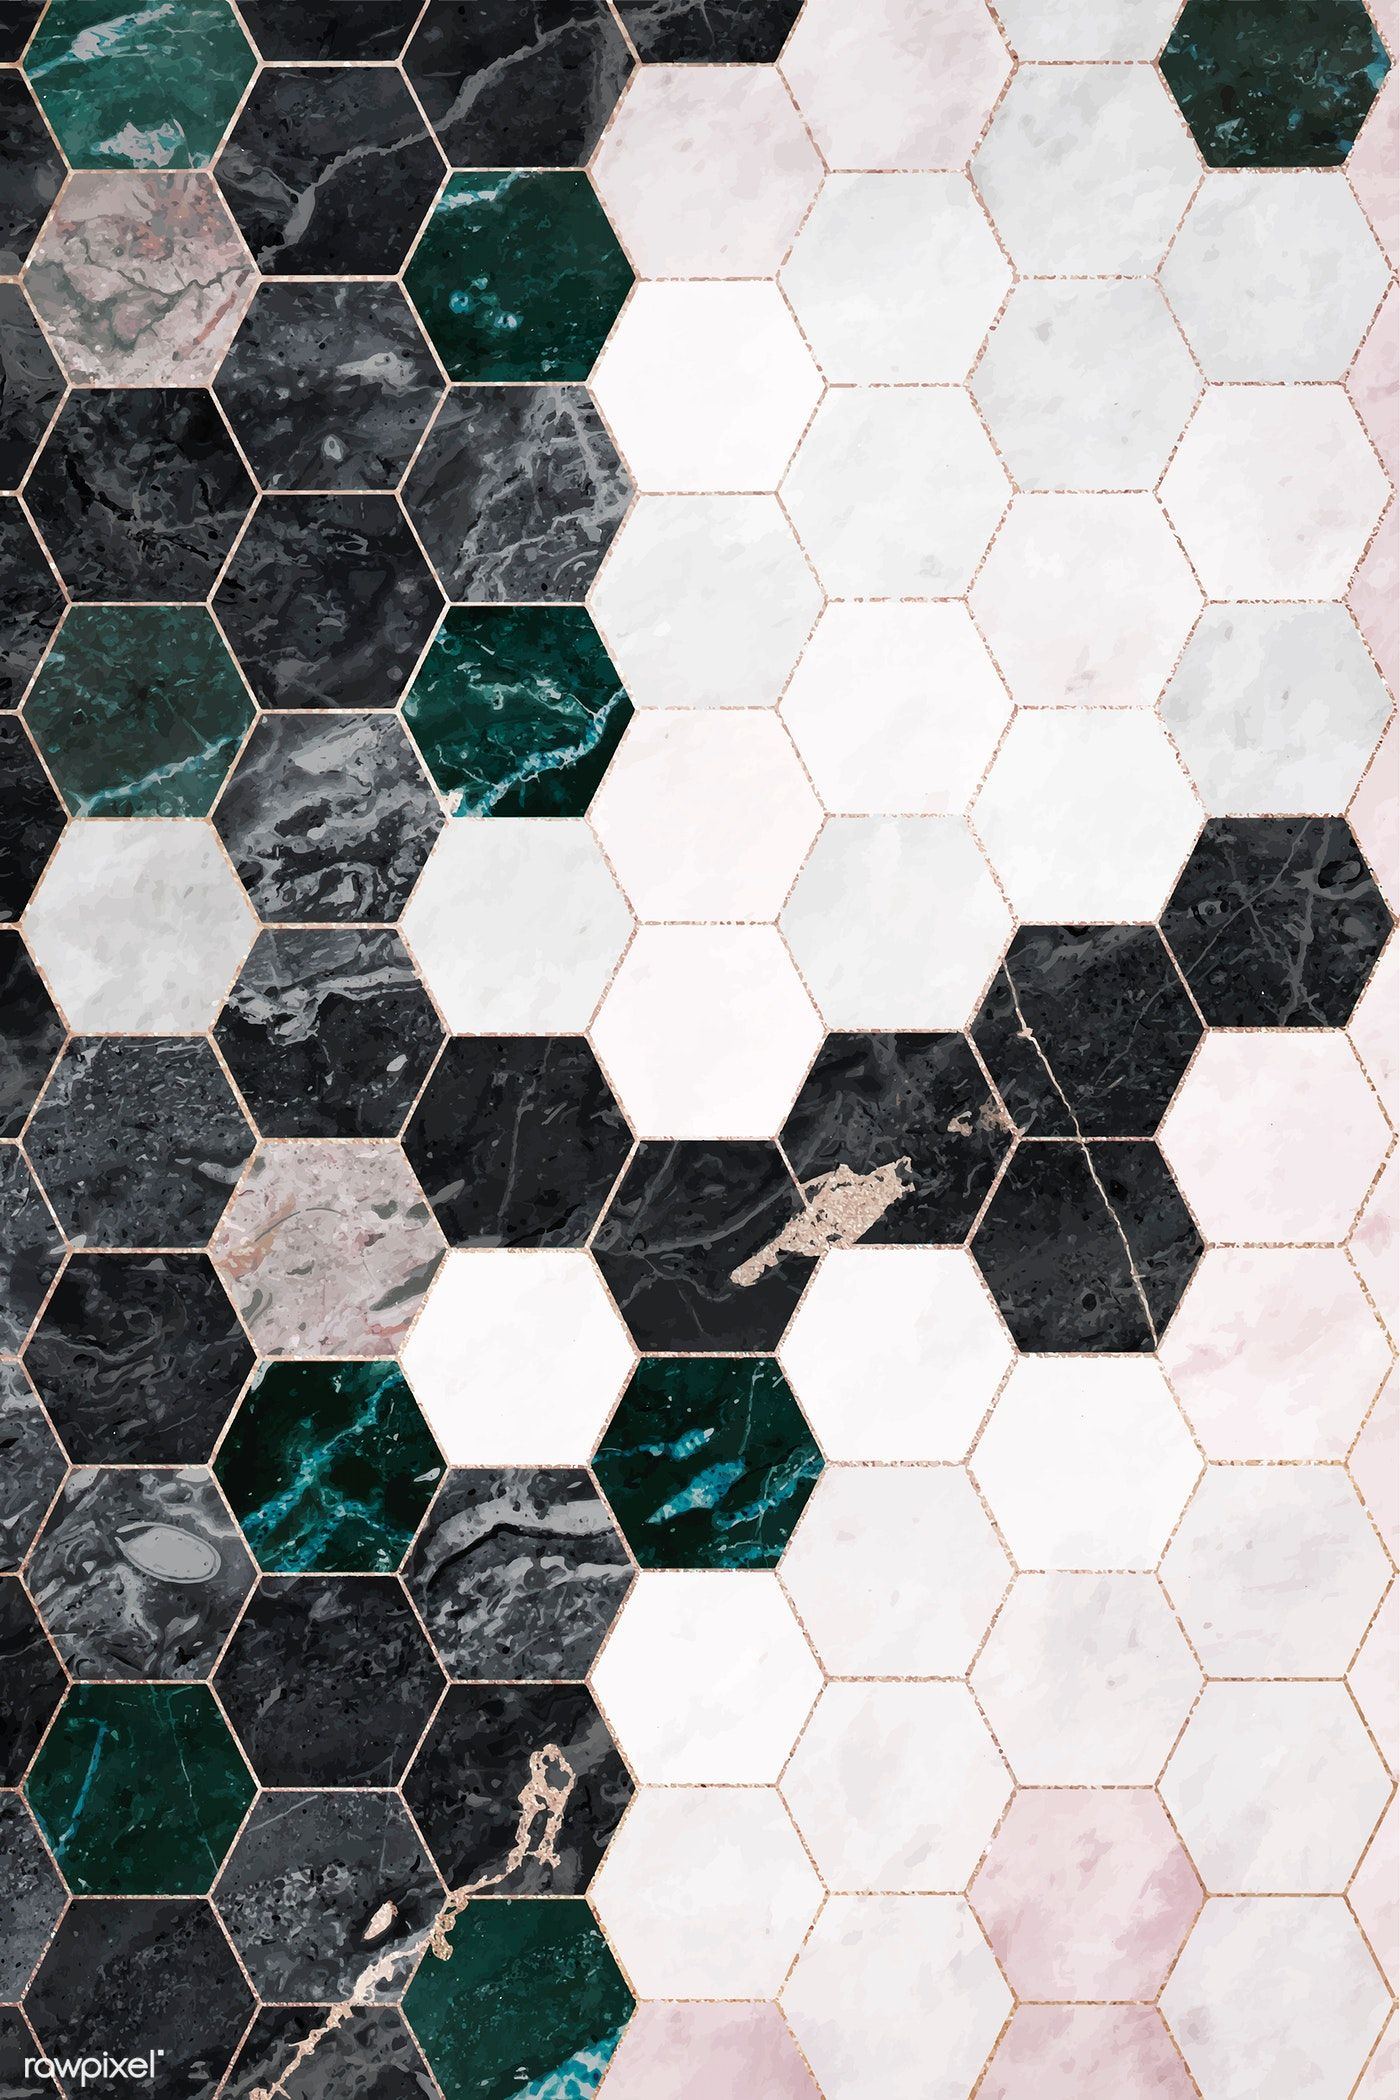 Hexagon Marble Tiles Patterned Background Vector Free Image By Rawpixel Com Fon In 2020 Vector Background Pattern Background Patterns Tile Patterns